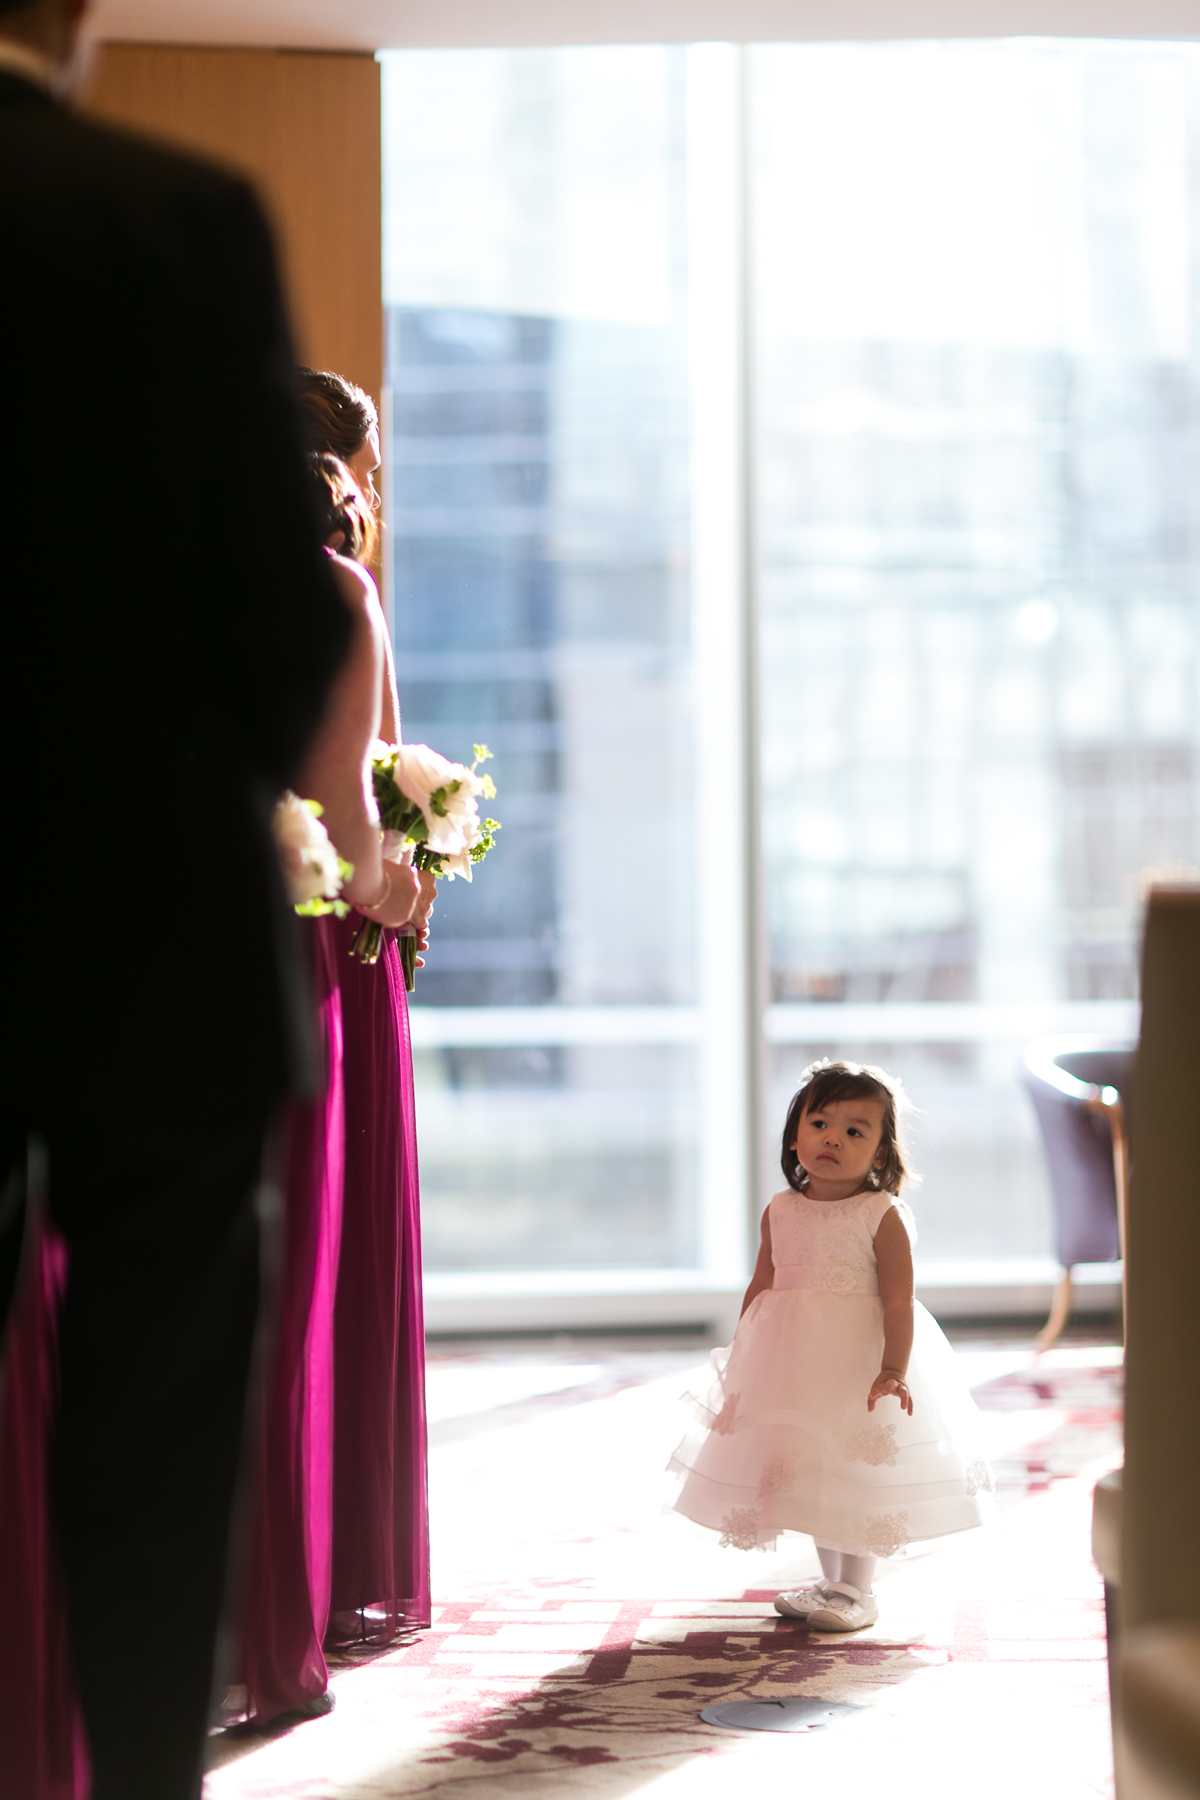 Phoebe Lo Events Toronto Wedding - Shangri La Hotel Luxury Fusion Wedding 023.jpg